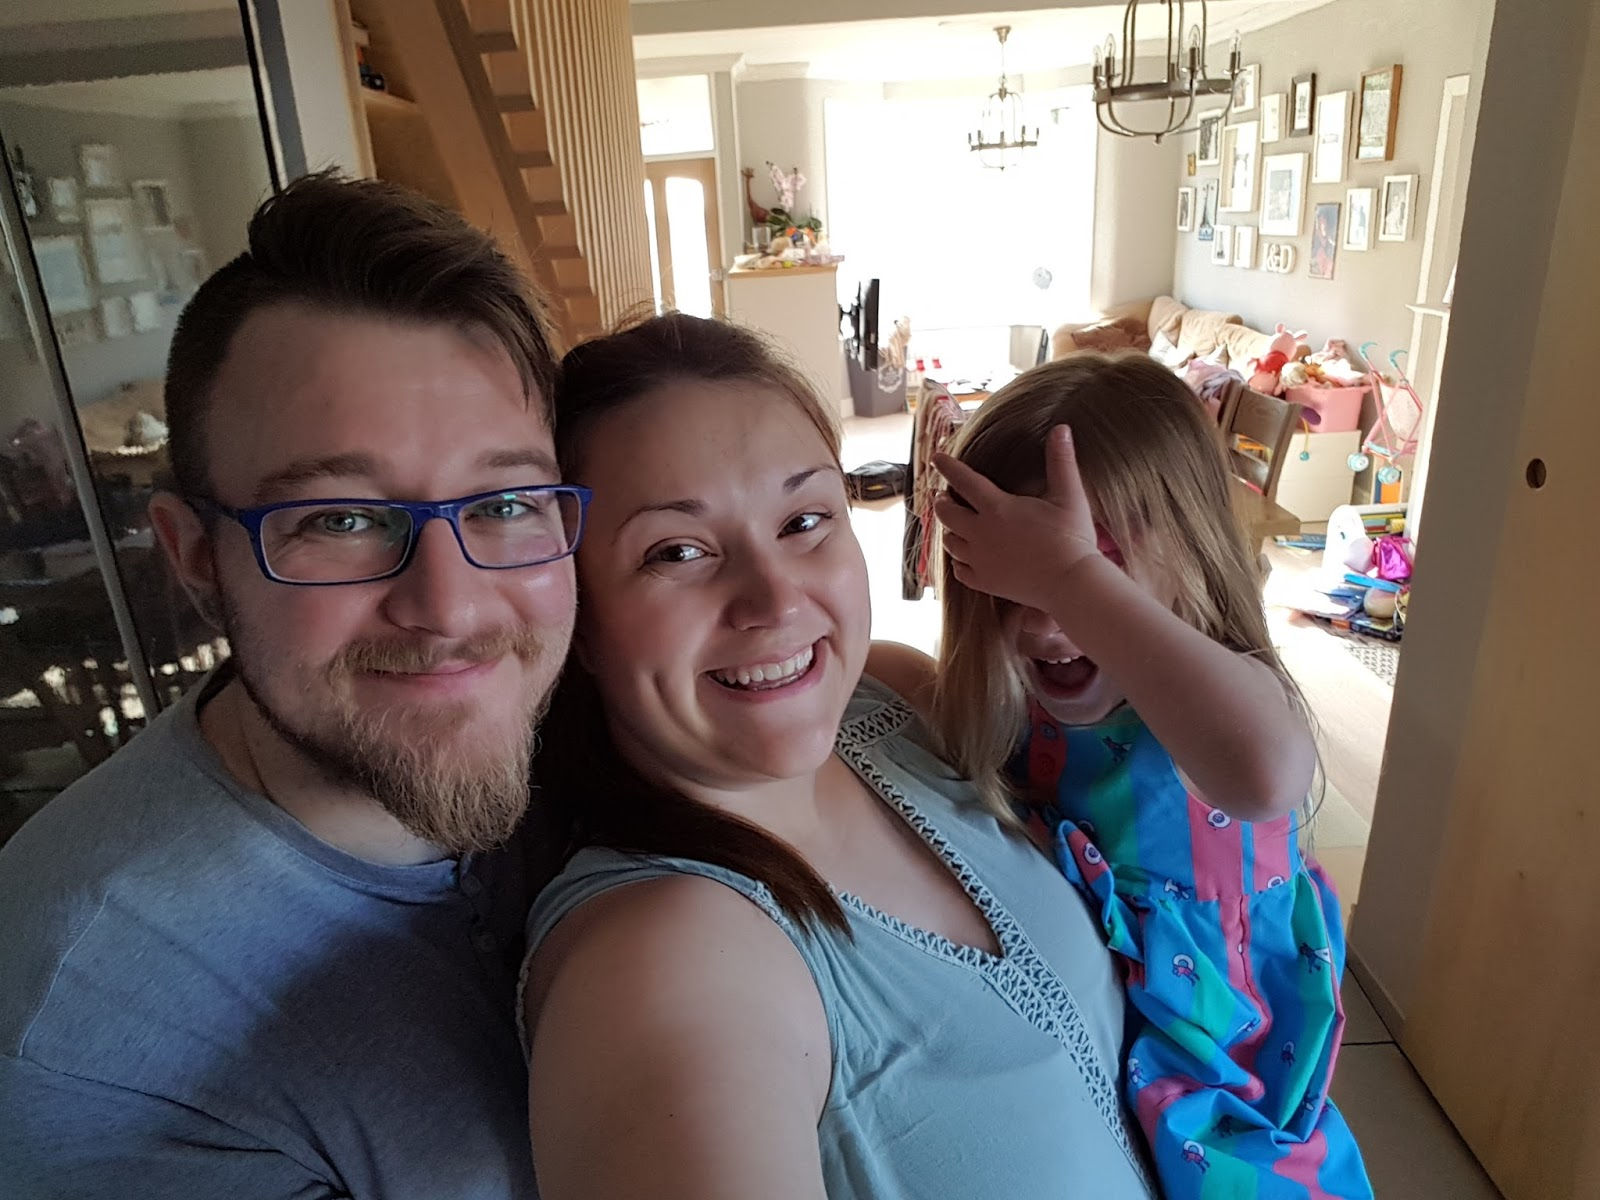 mum dad and daughter in a family selfie